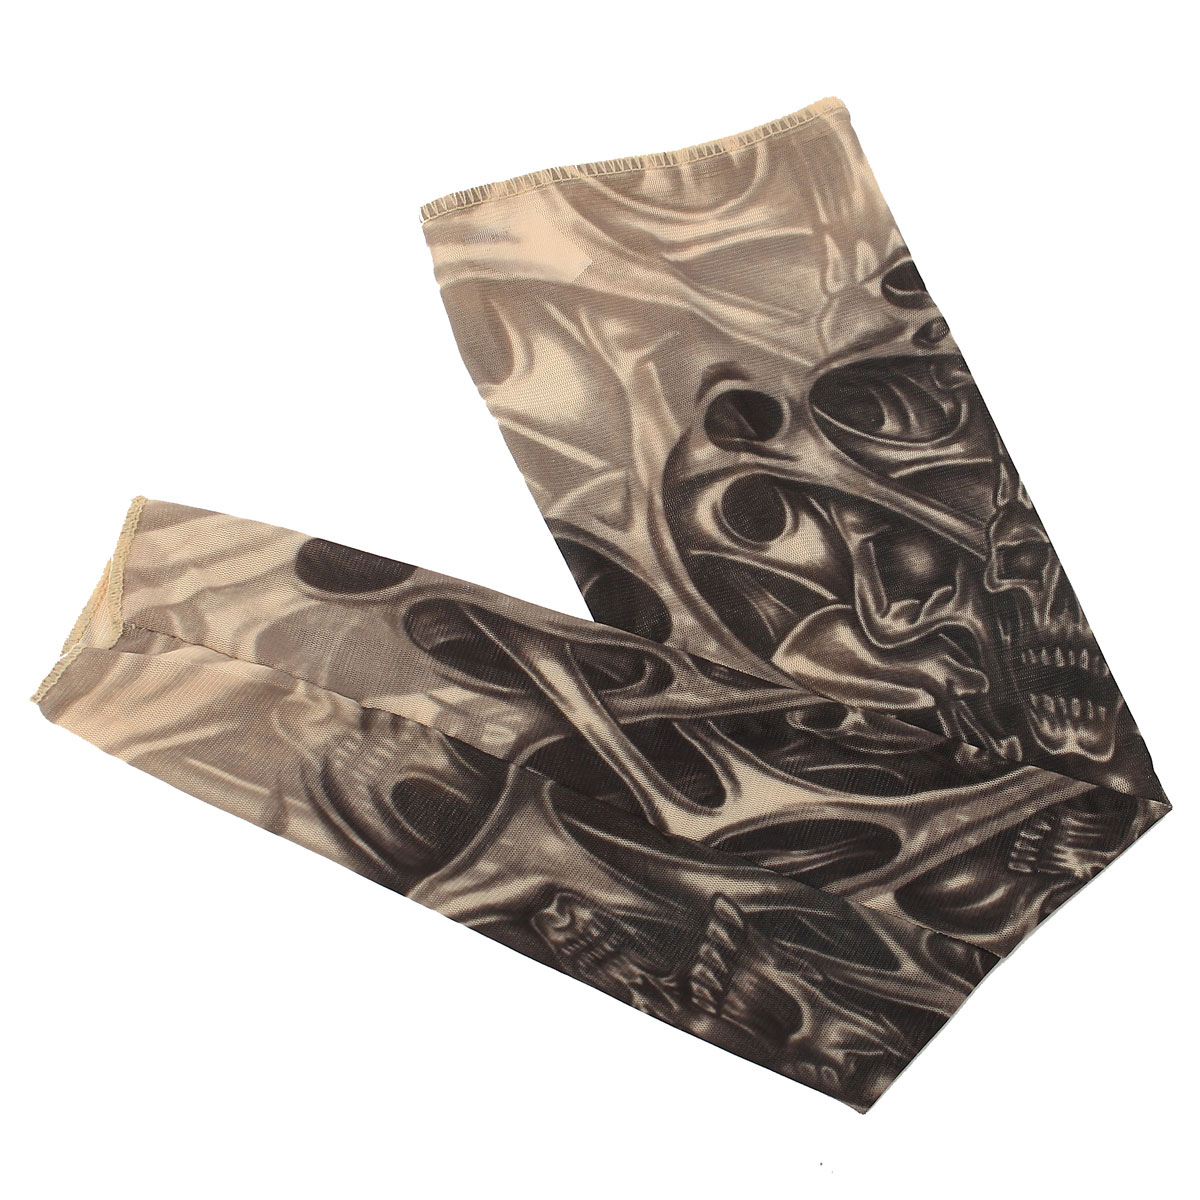 1pc Skull Tattoo Sleeves Nylon Spandex Stretchy Temporary Arm Stockings